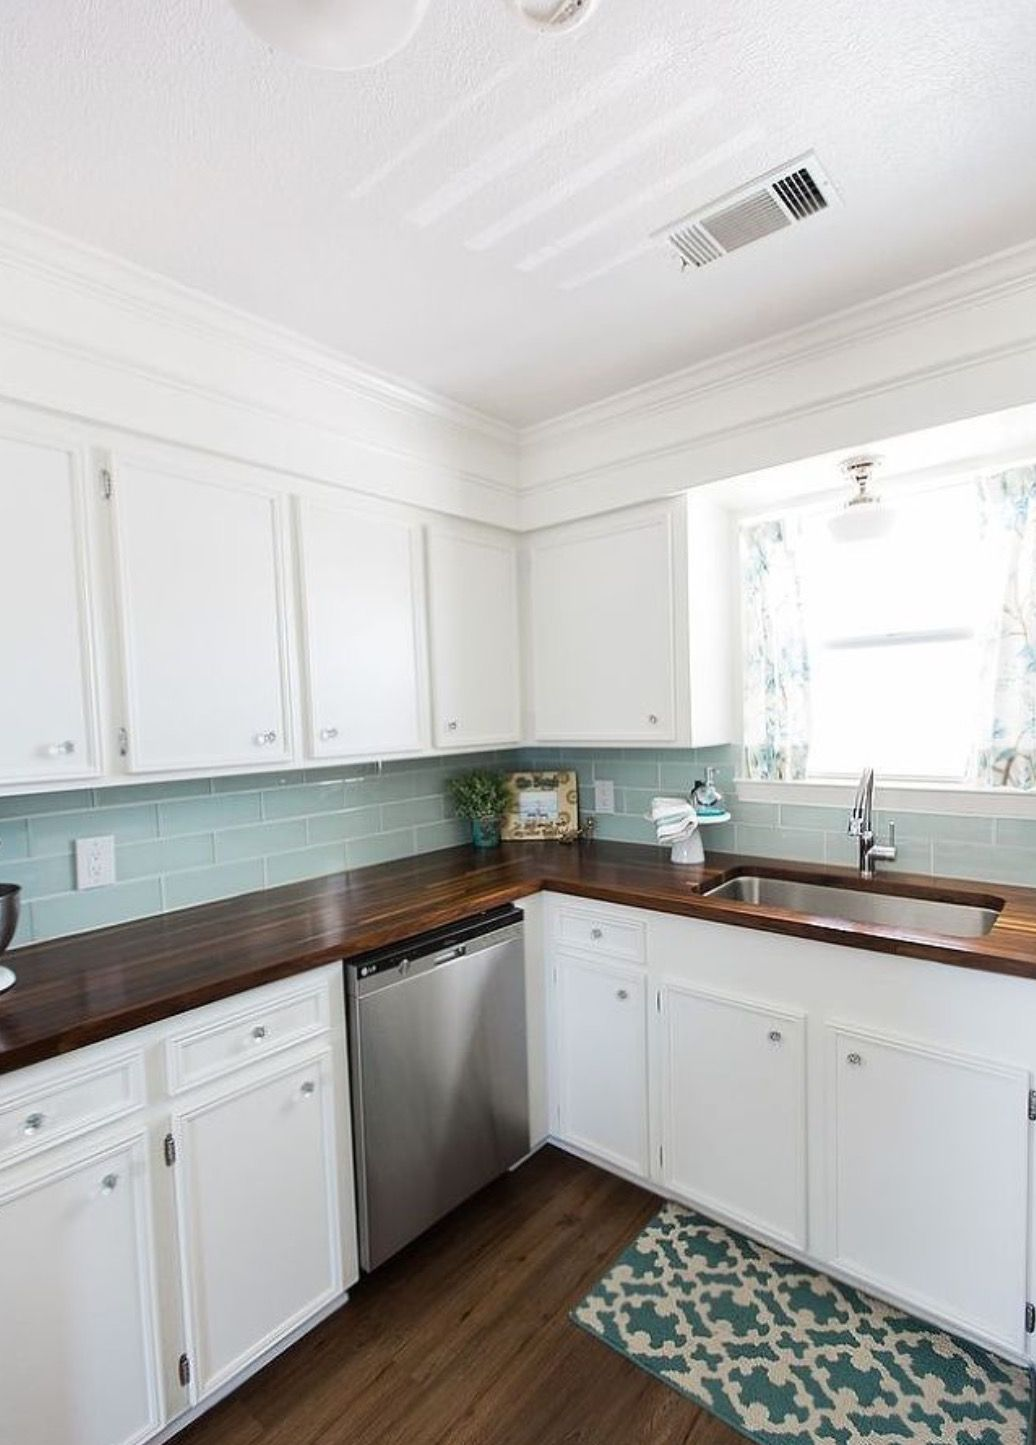 Butcher Block Counter And Subway Tile Backsplash (love The Color)